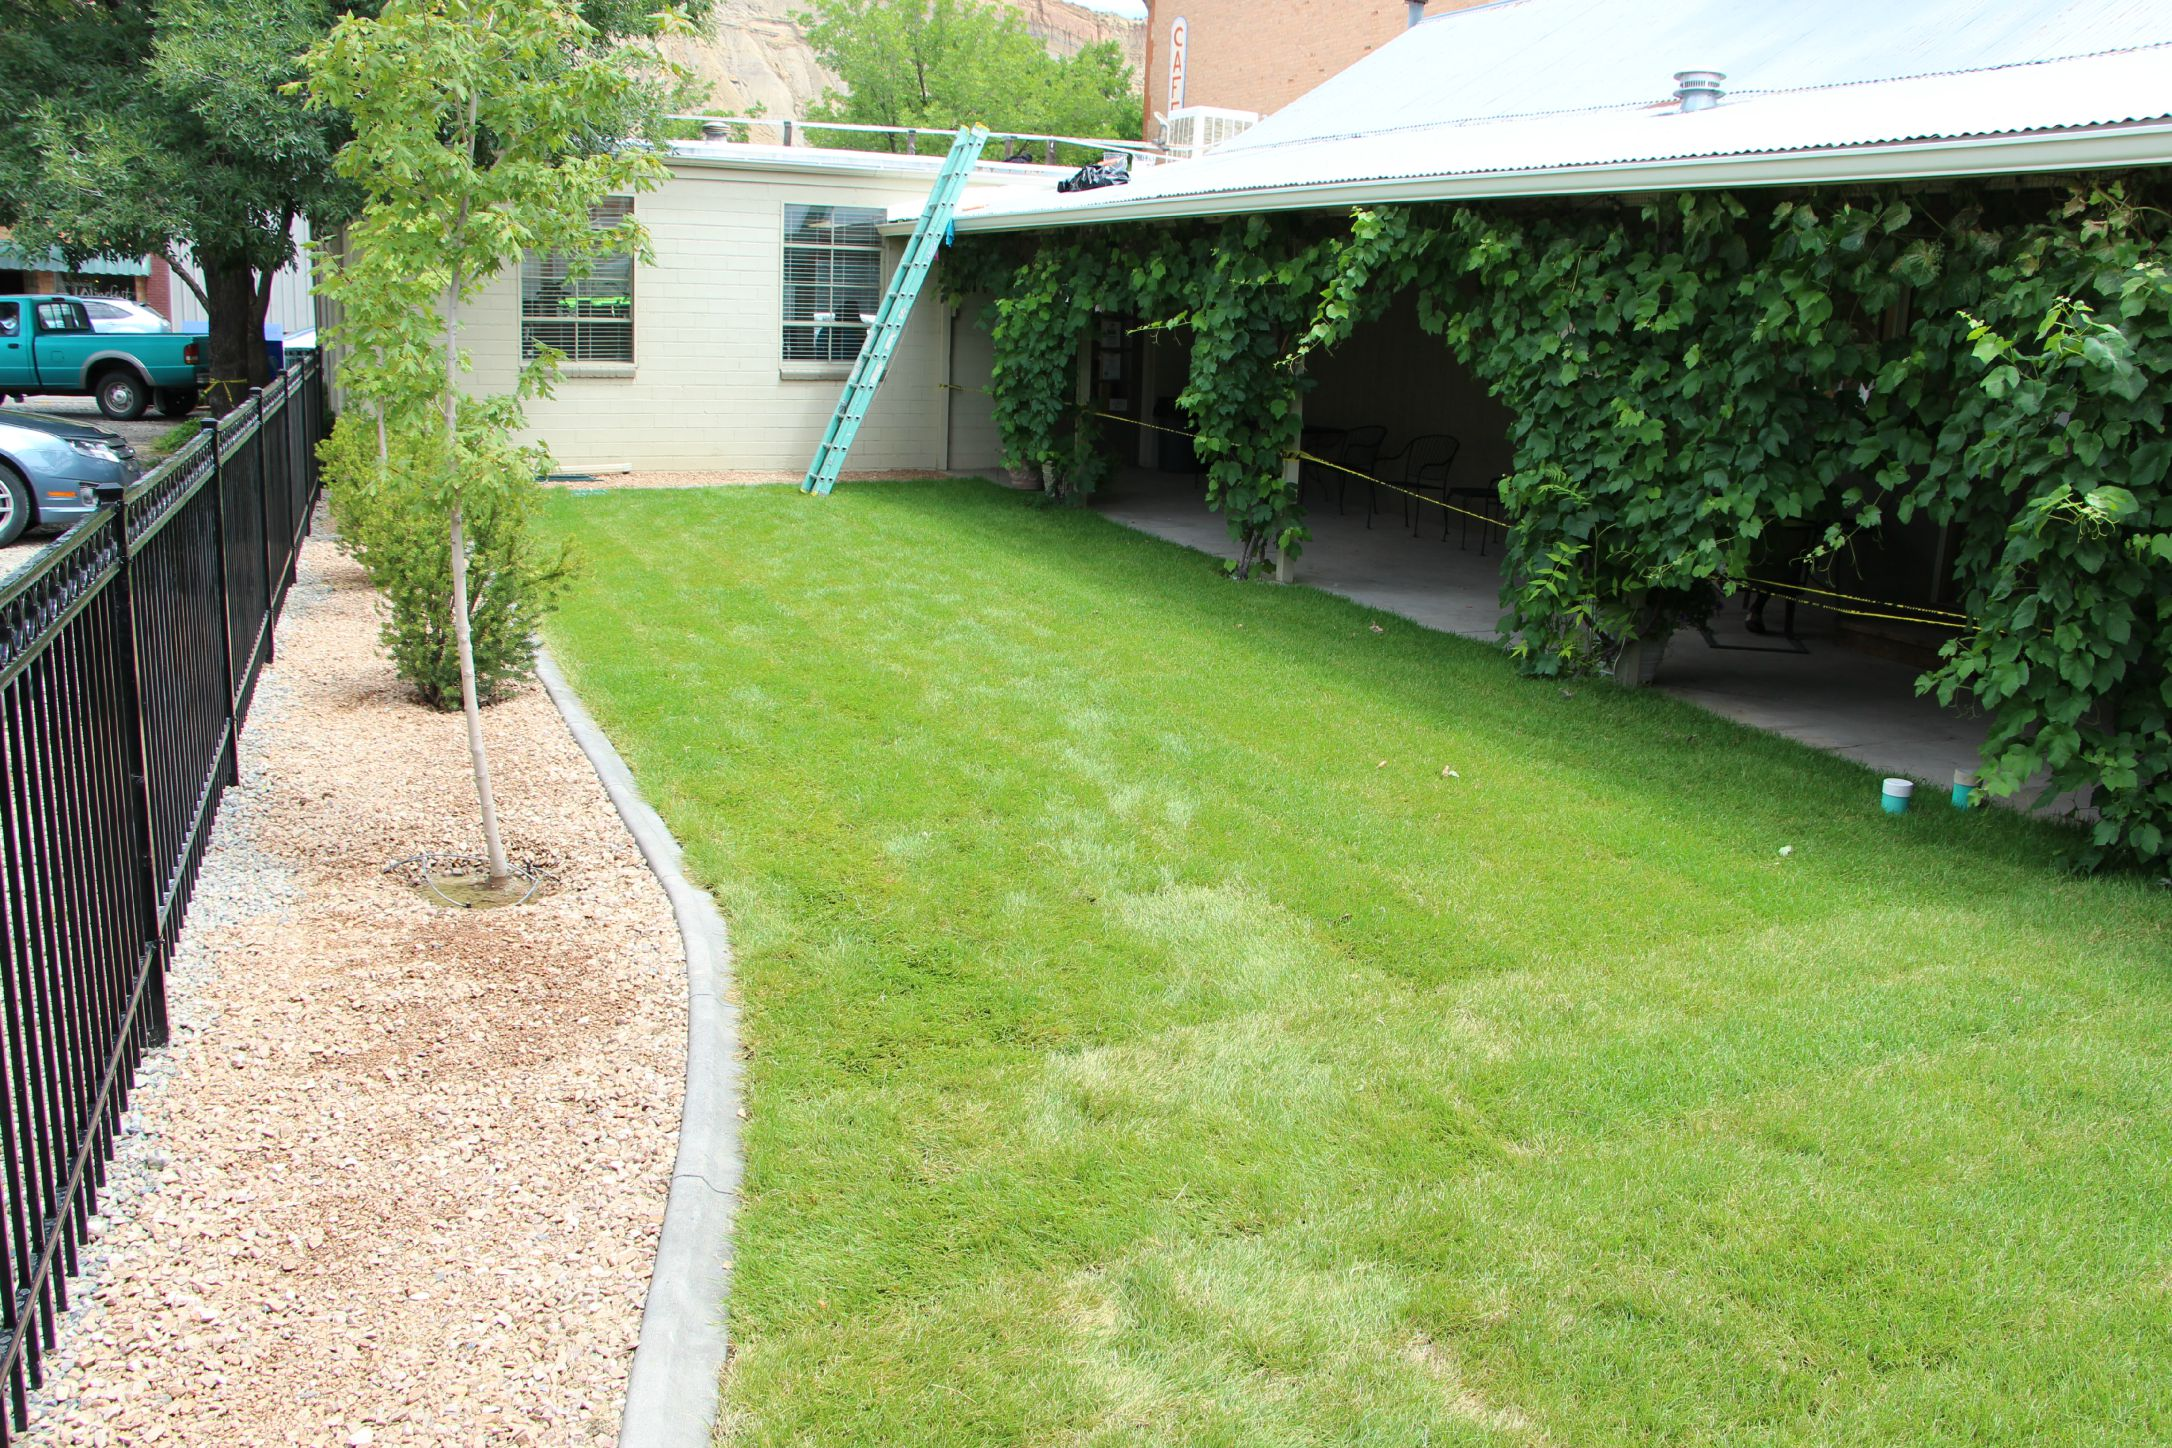 -Palisade Branch landscaping 7-24-15